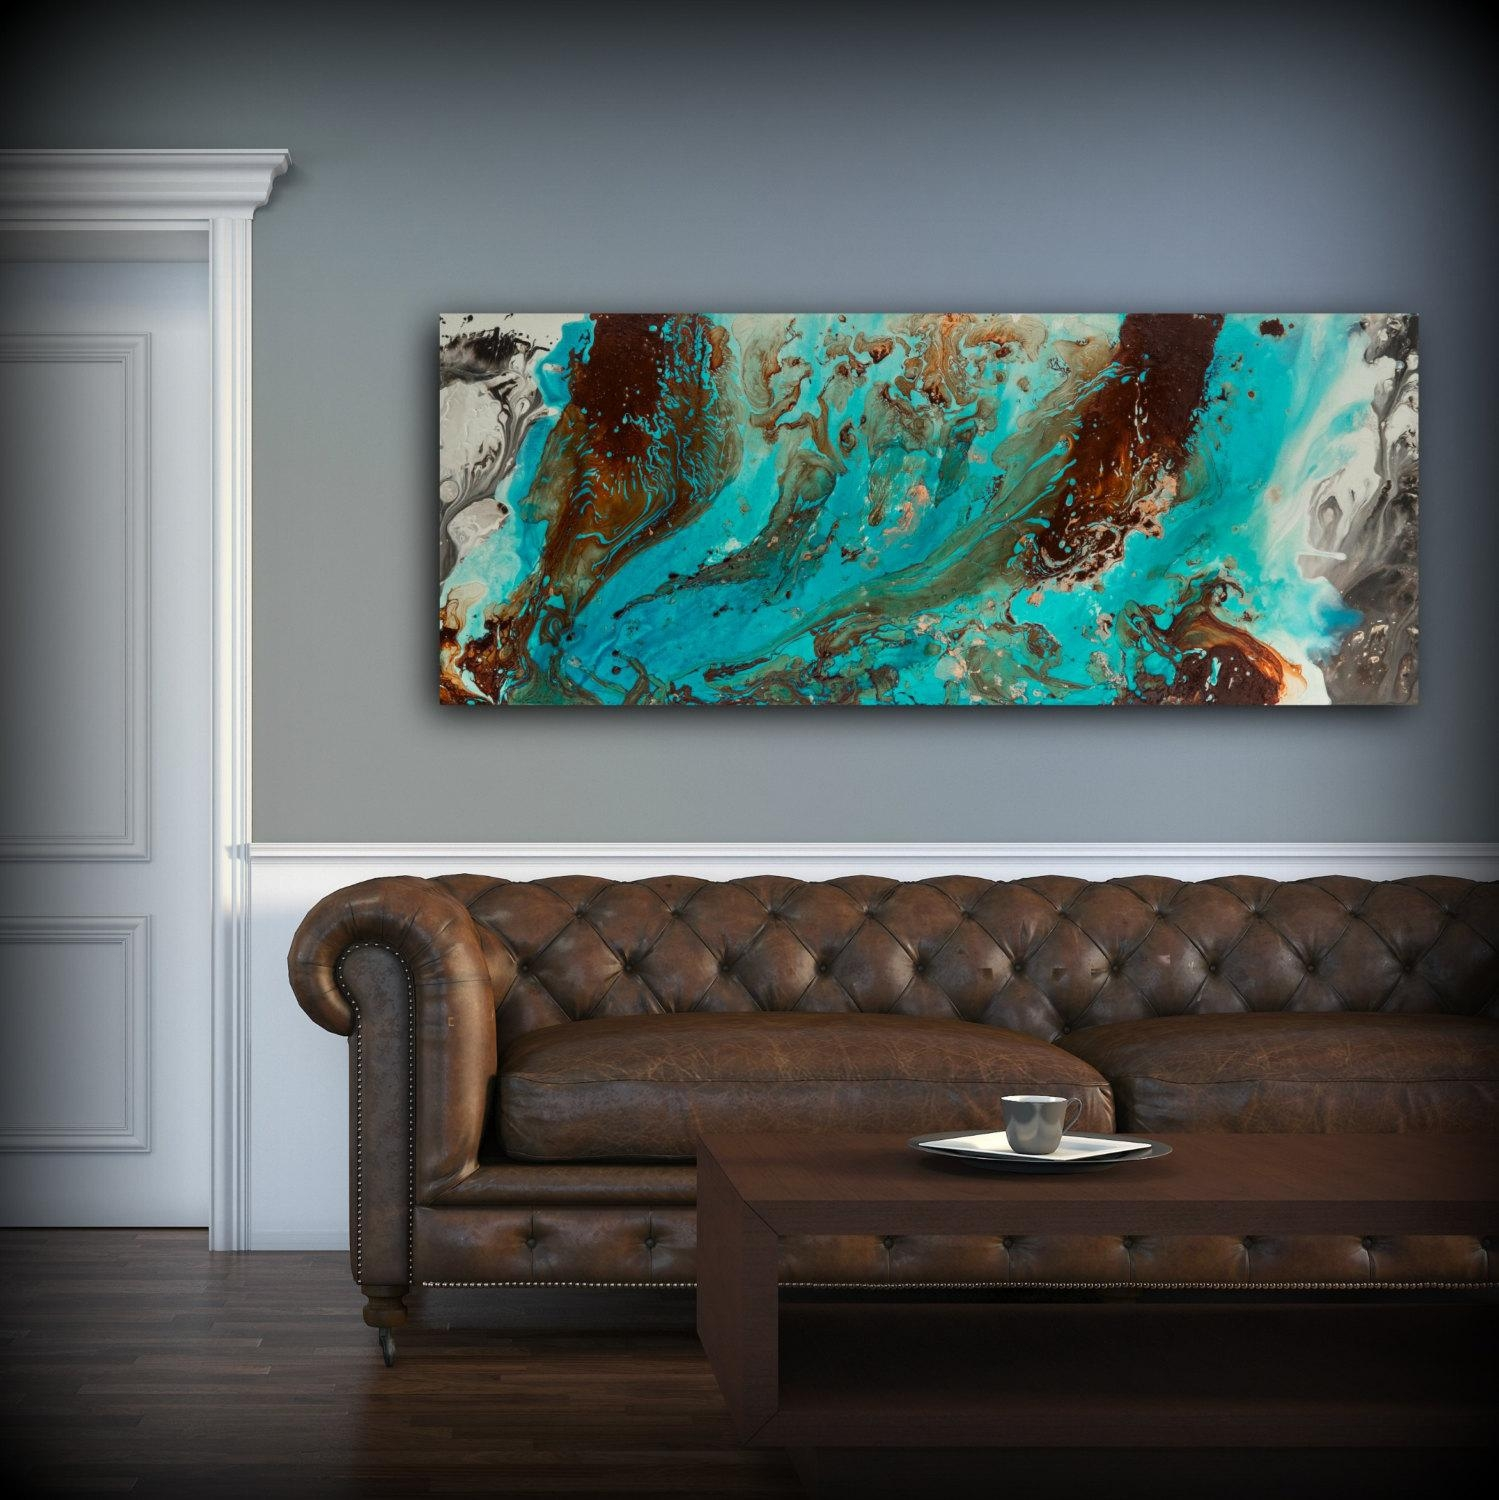 Aqua Print Blue And Brown Wall Art Decor Colourful Bohemian Intended For Teal And Green Wall Art (Image 2 of 20)